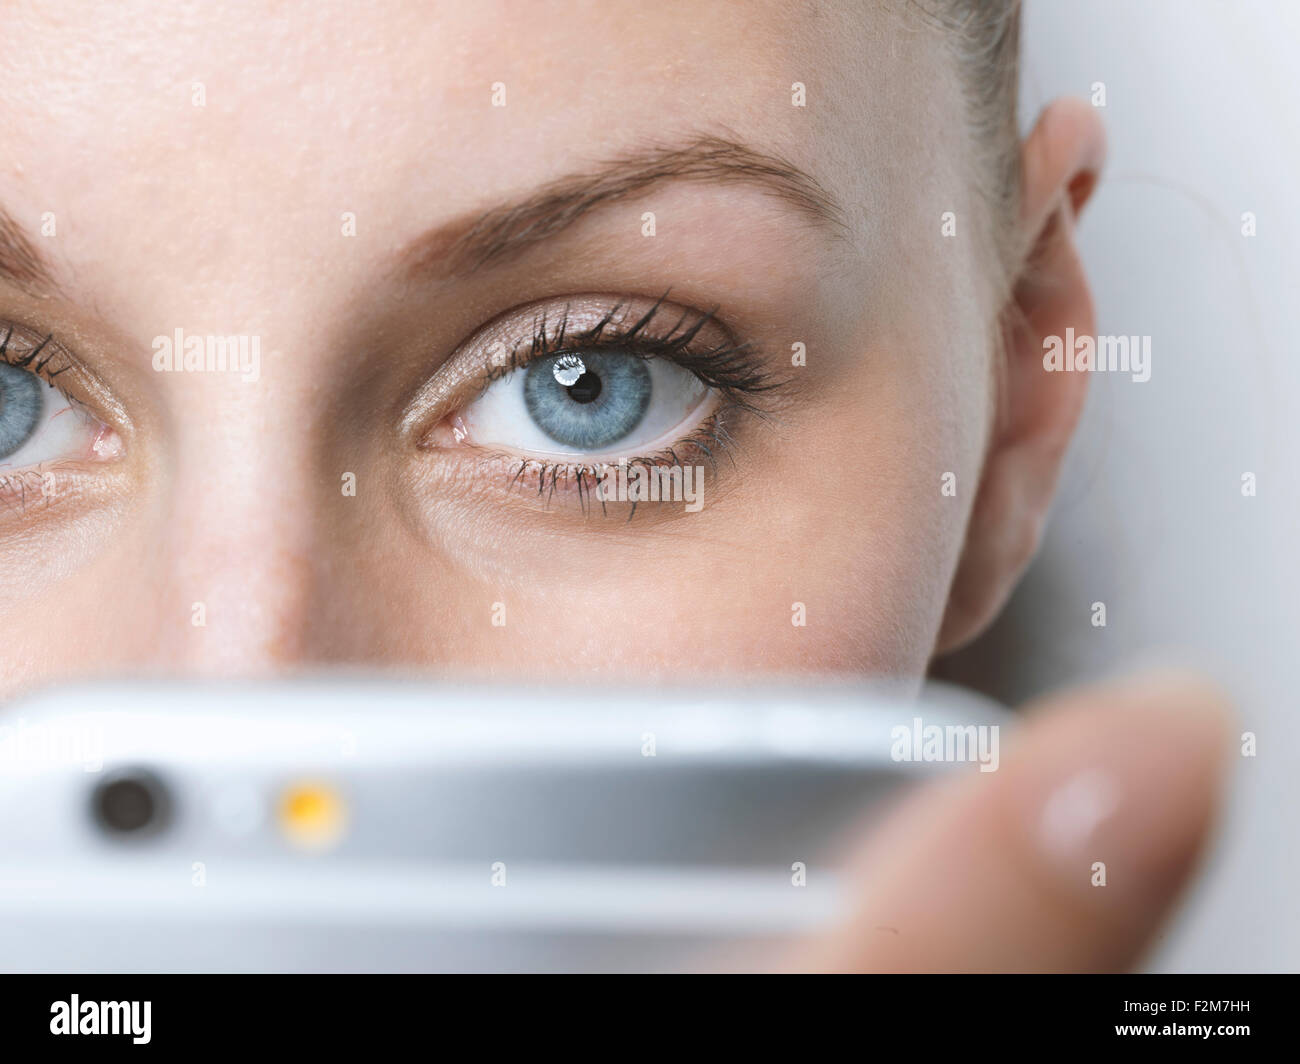 Close-up of woman with cell phone Photo Stock